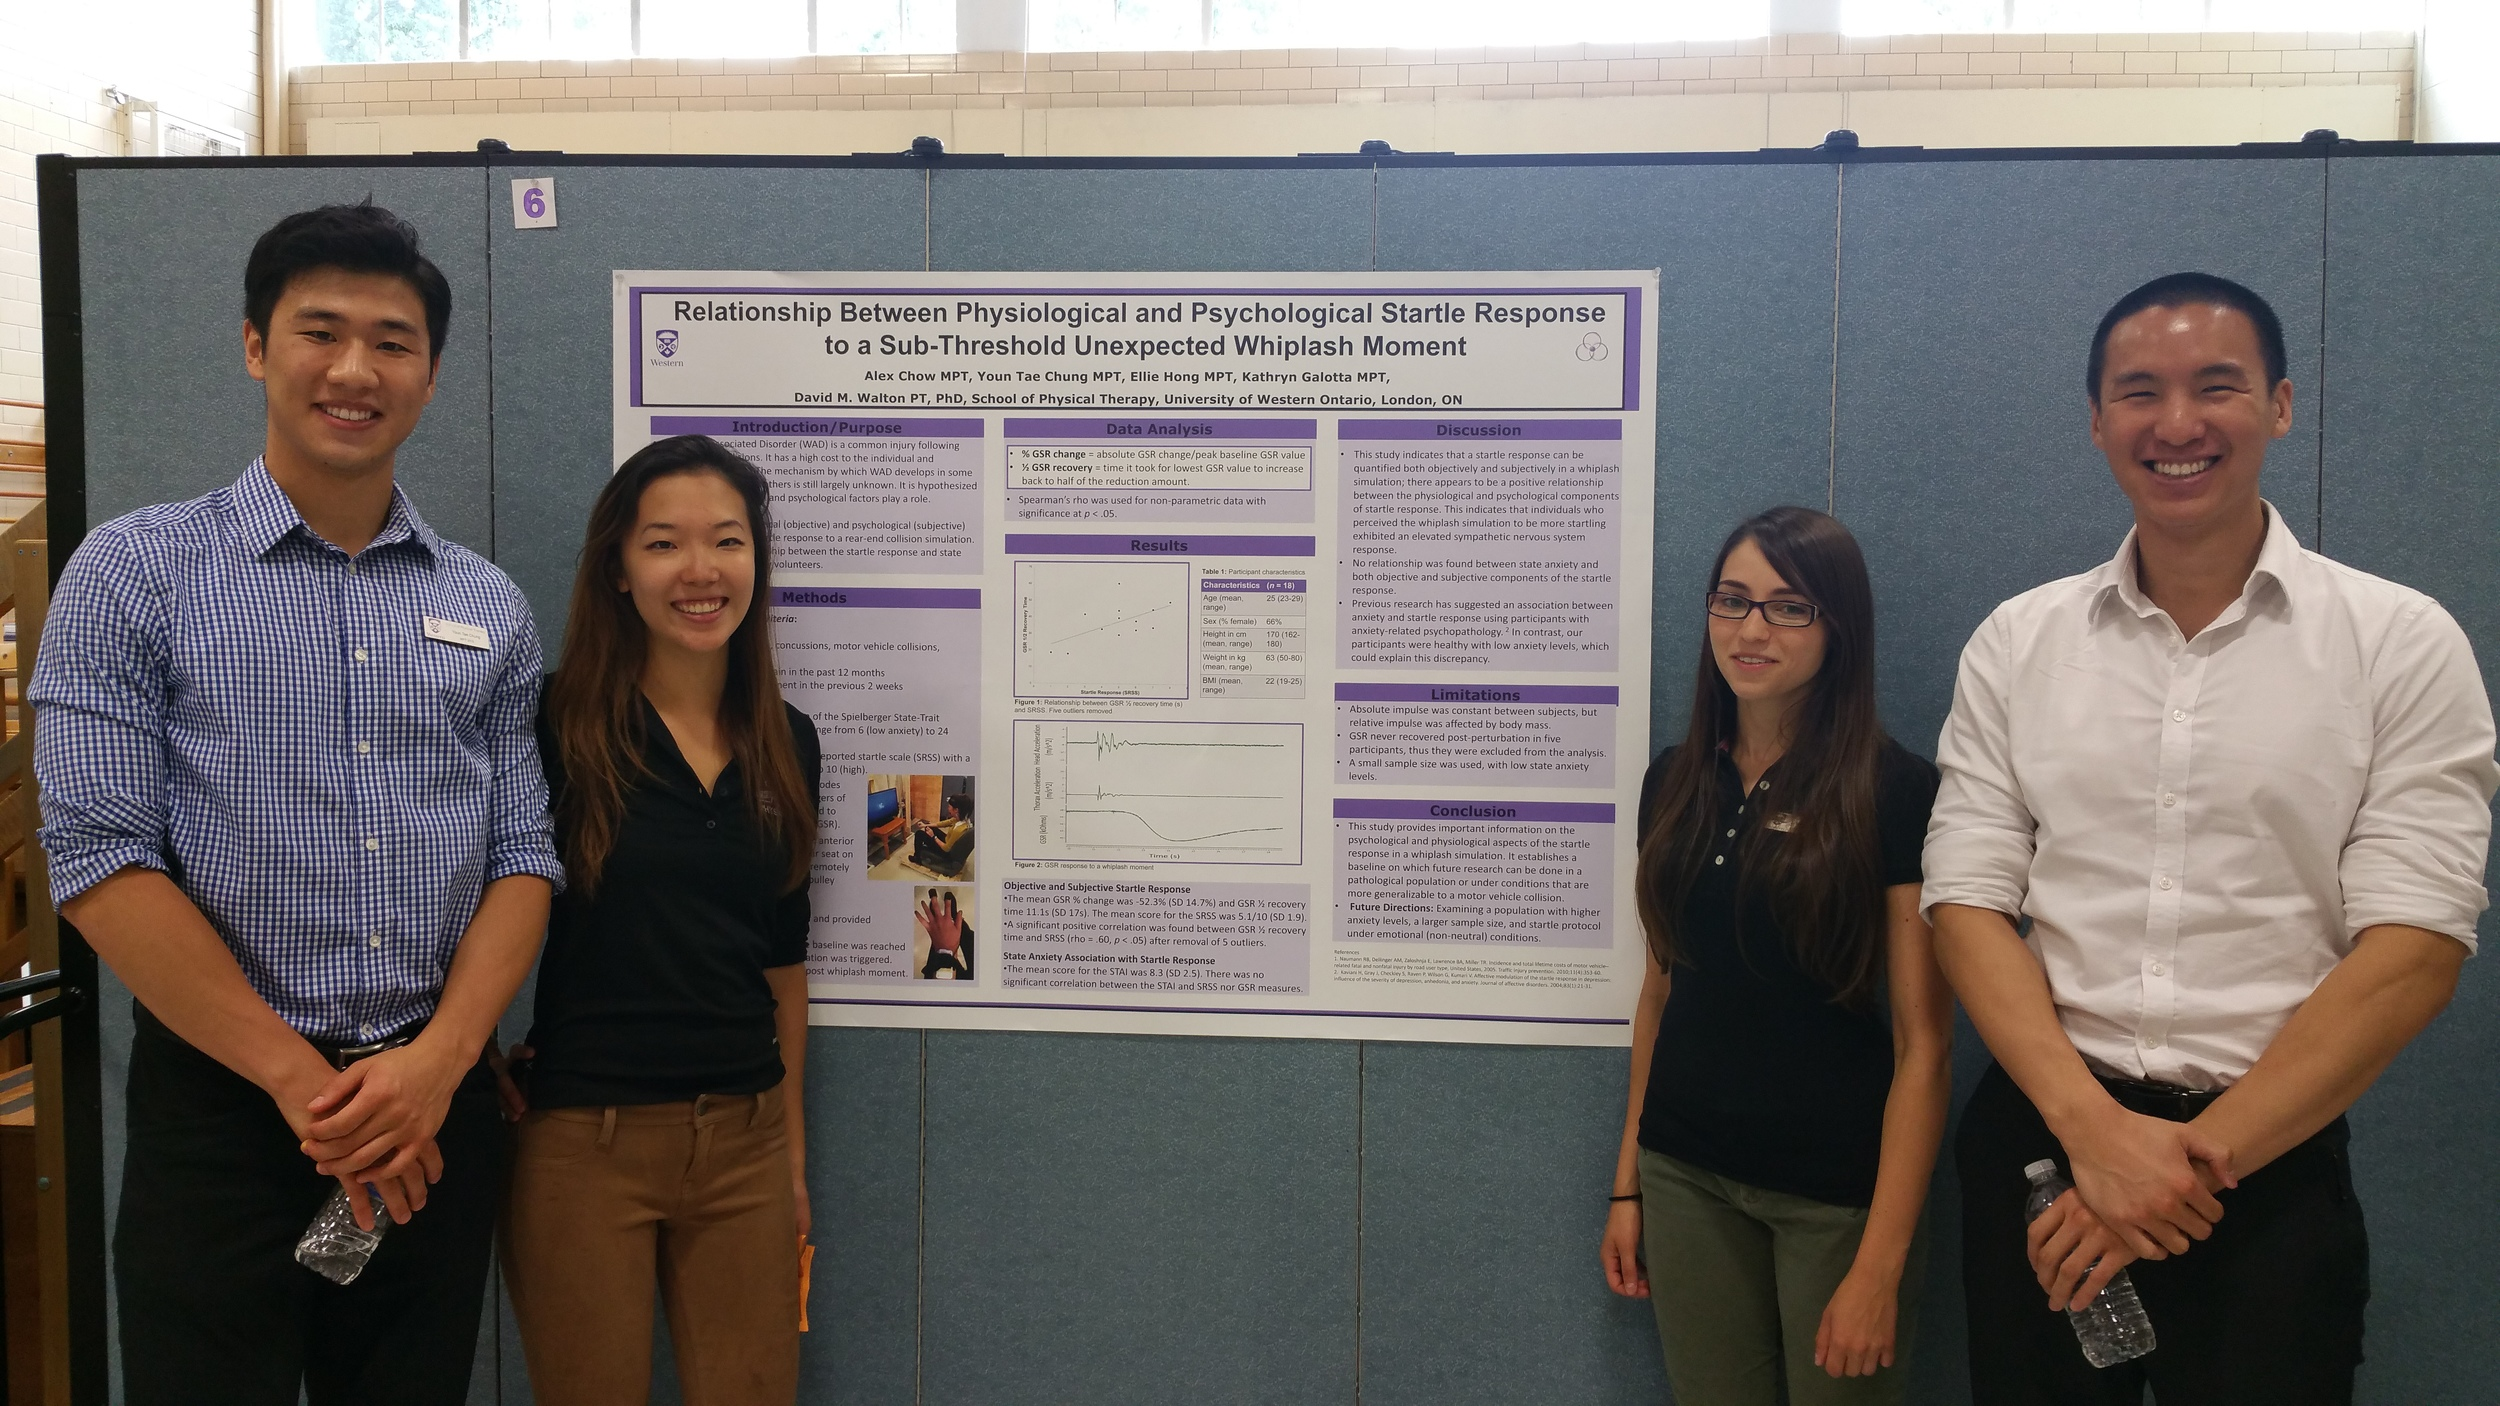 Youn Tae Chung, Ellie Hong, Katie Galotta and Alex Chow:  Relationships Between Physiological and Psychological Startle Response to a Sub-Threshold Unexpected Whiplash Moment